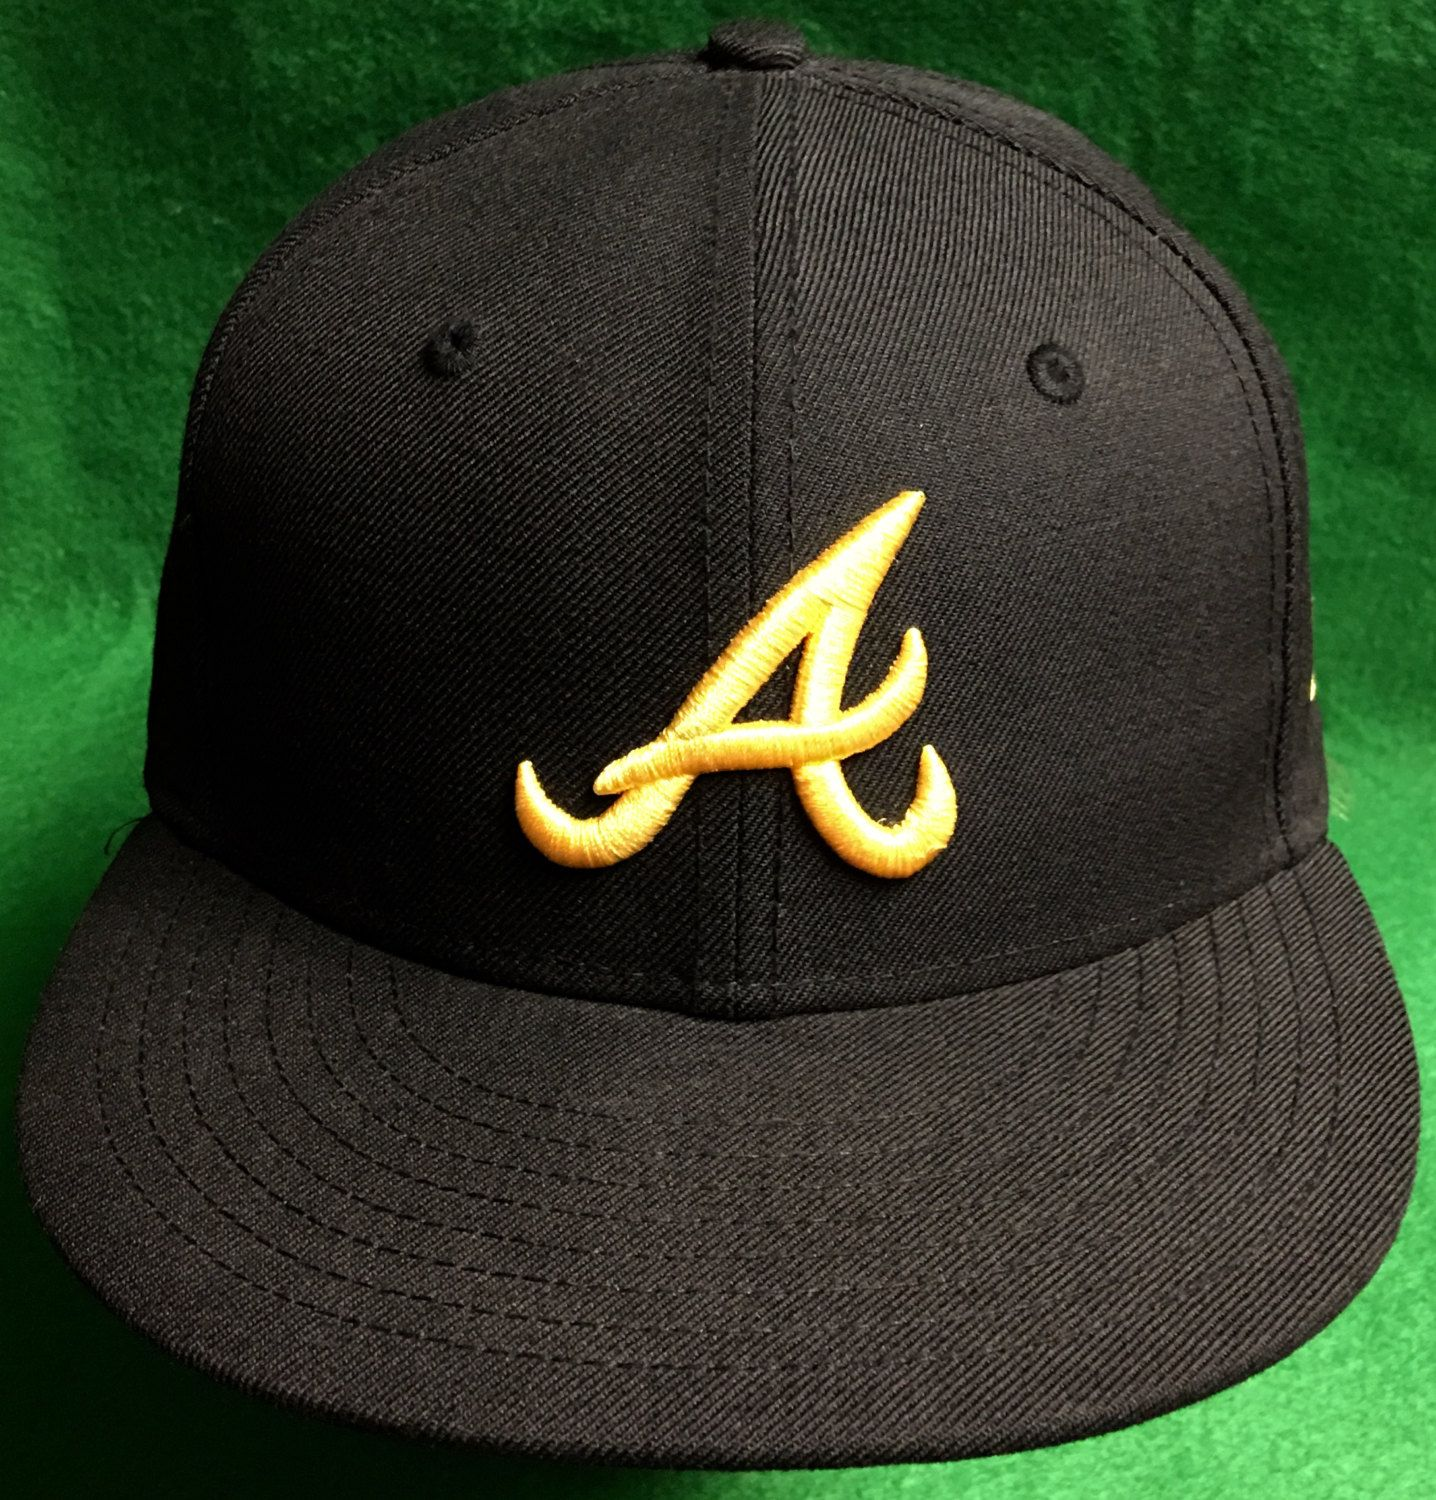 Atlanta Braves Black And Gold New Era Fitted Cap Size 7 1 4 By Corycranksouthats On Etsy New Era Fitted Atlanta Braves New Era